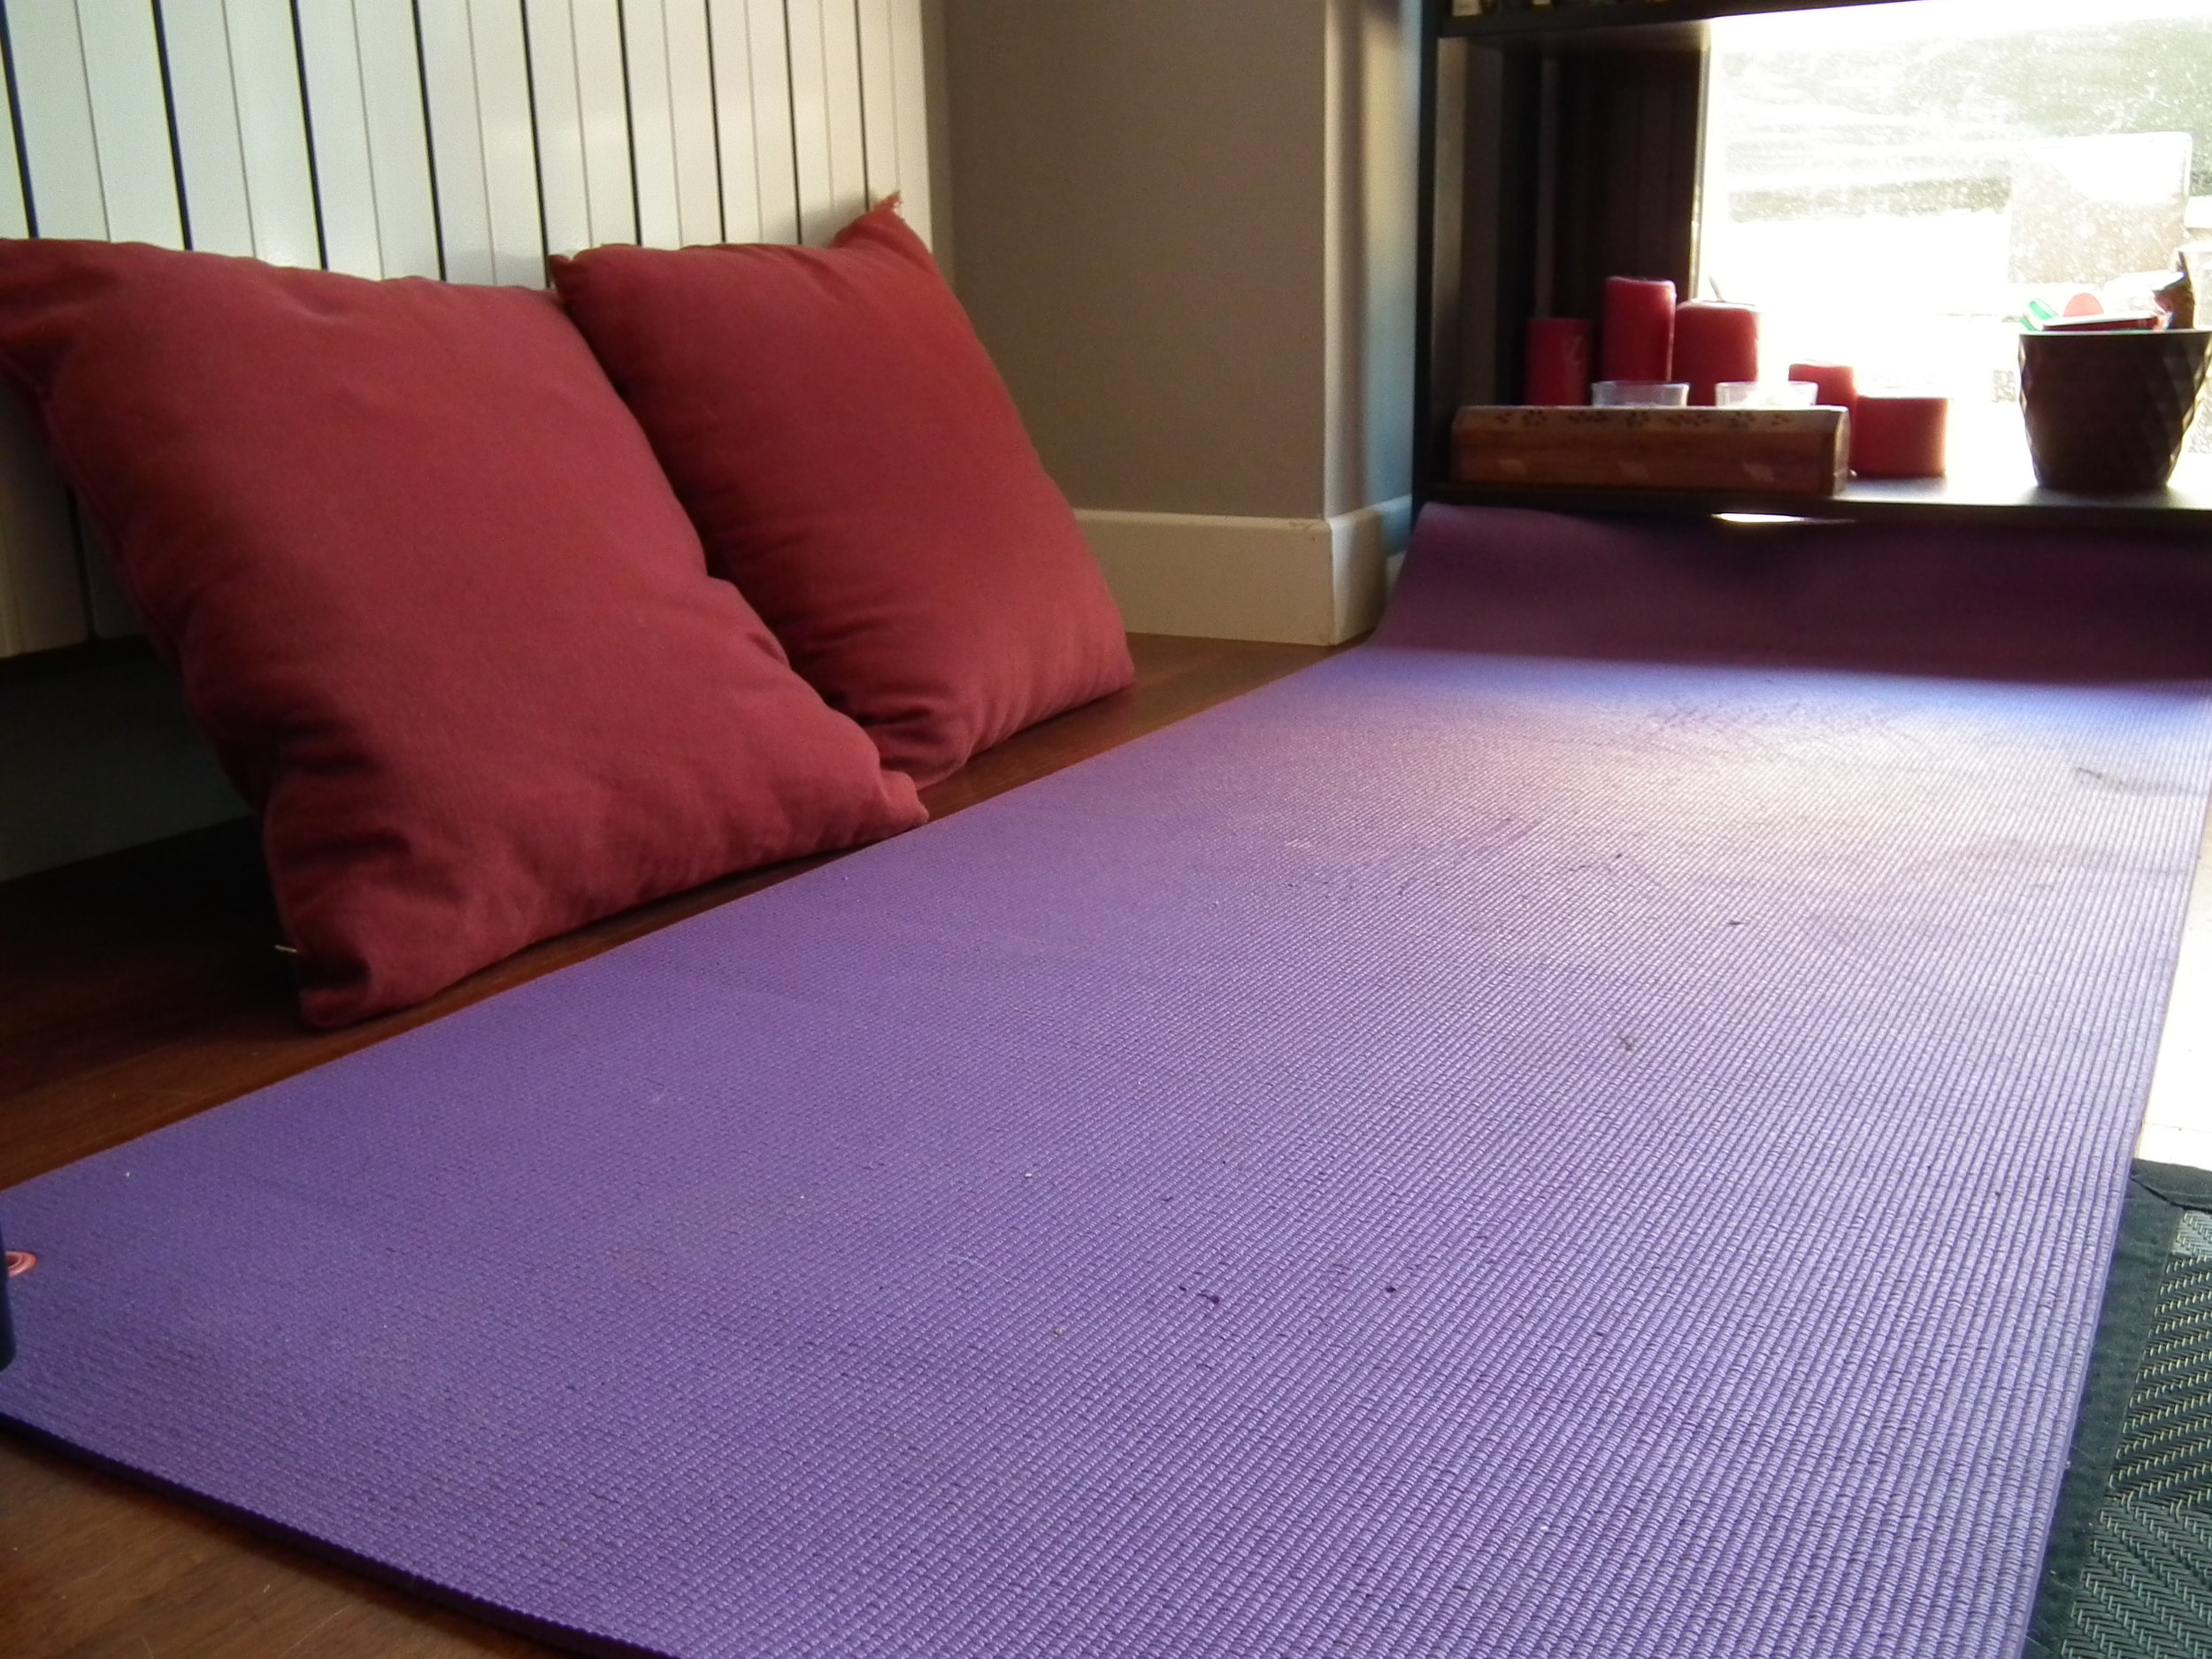 mindfulness-meditiation-corner-yoga-mat-practice-formal-zen